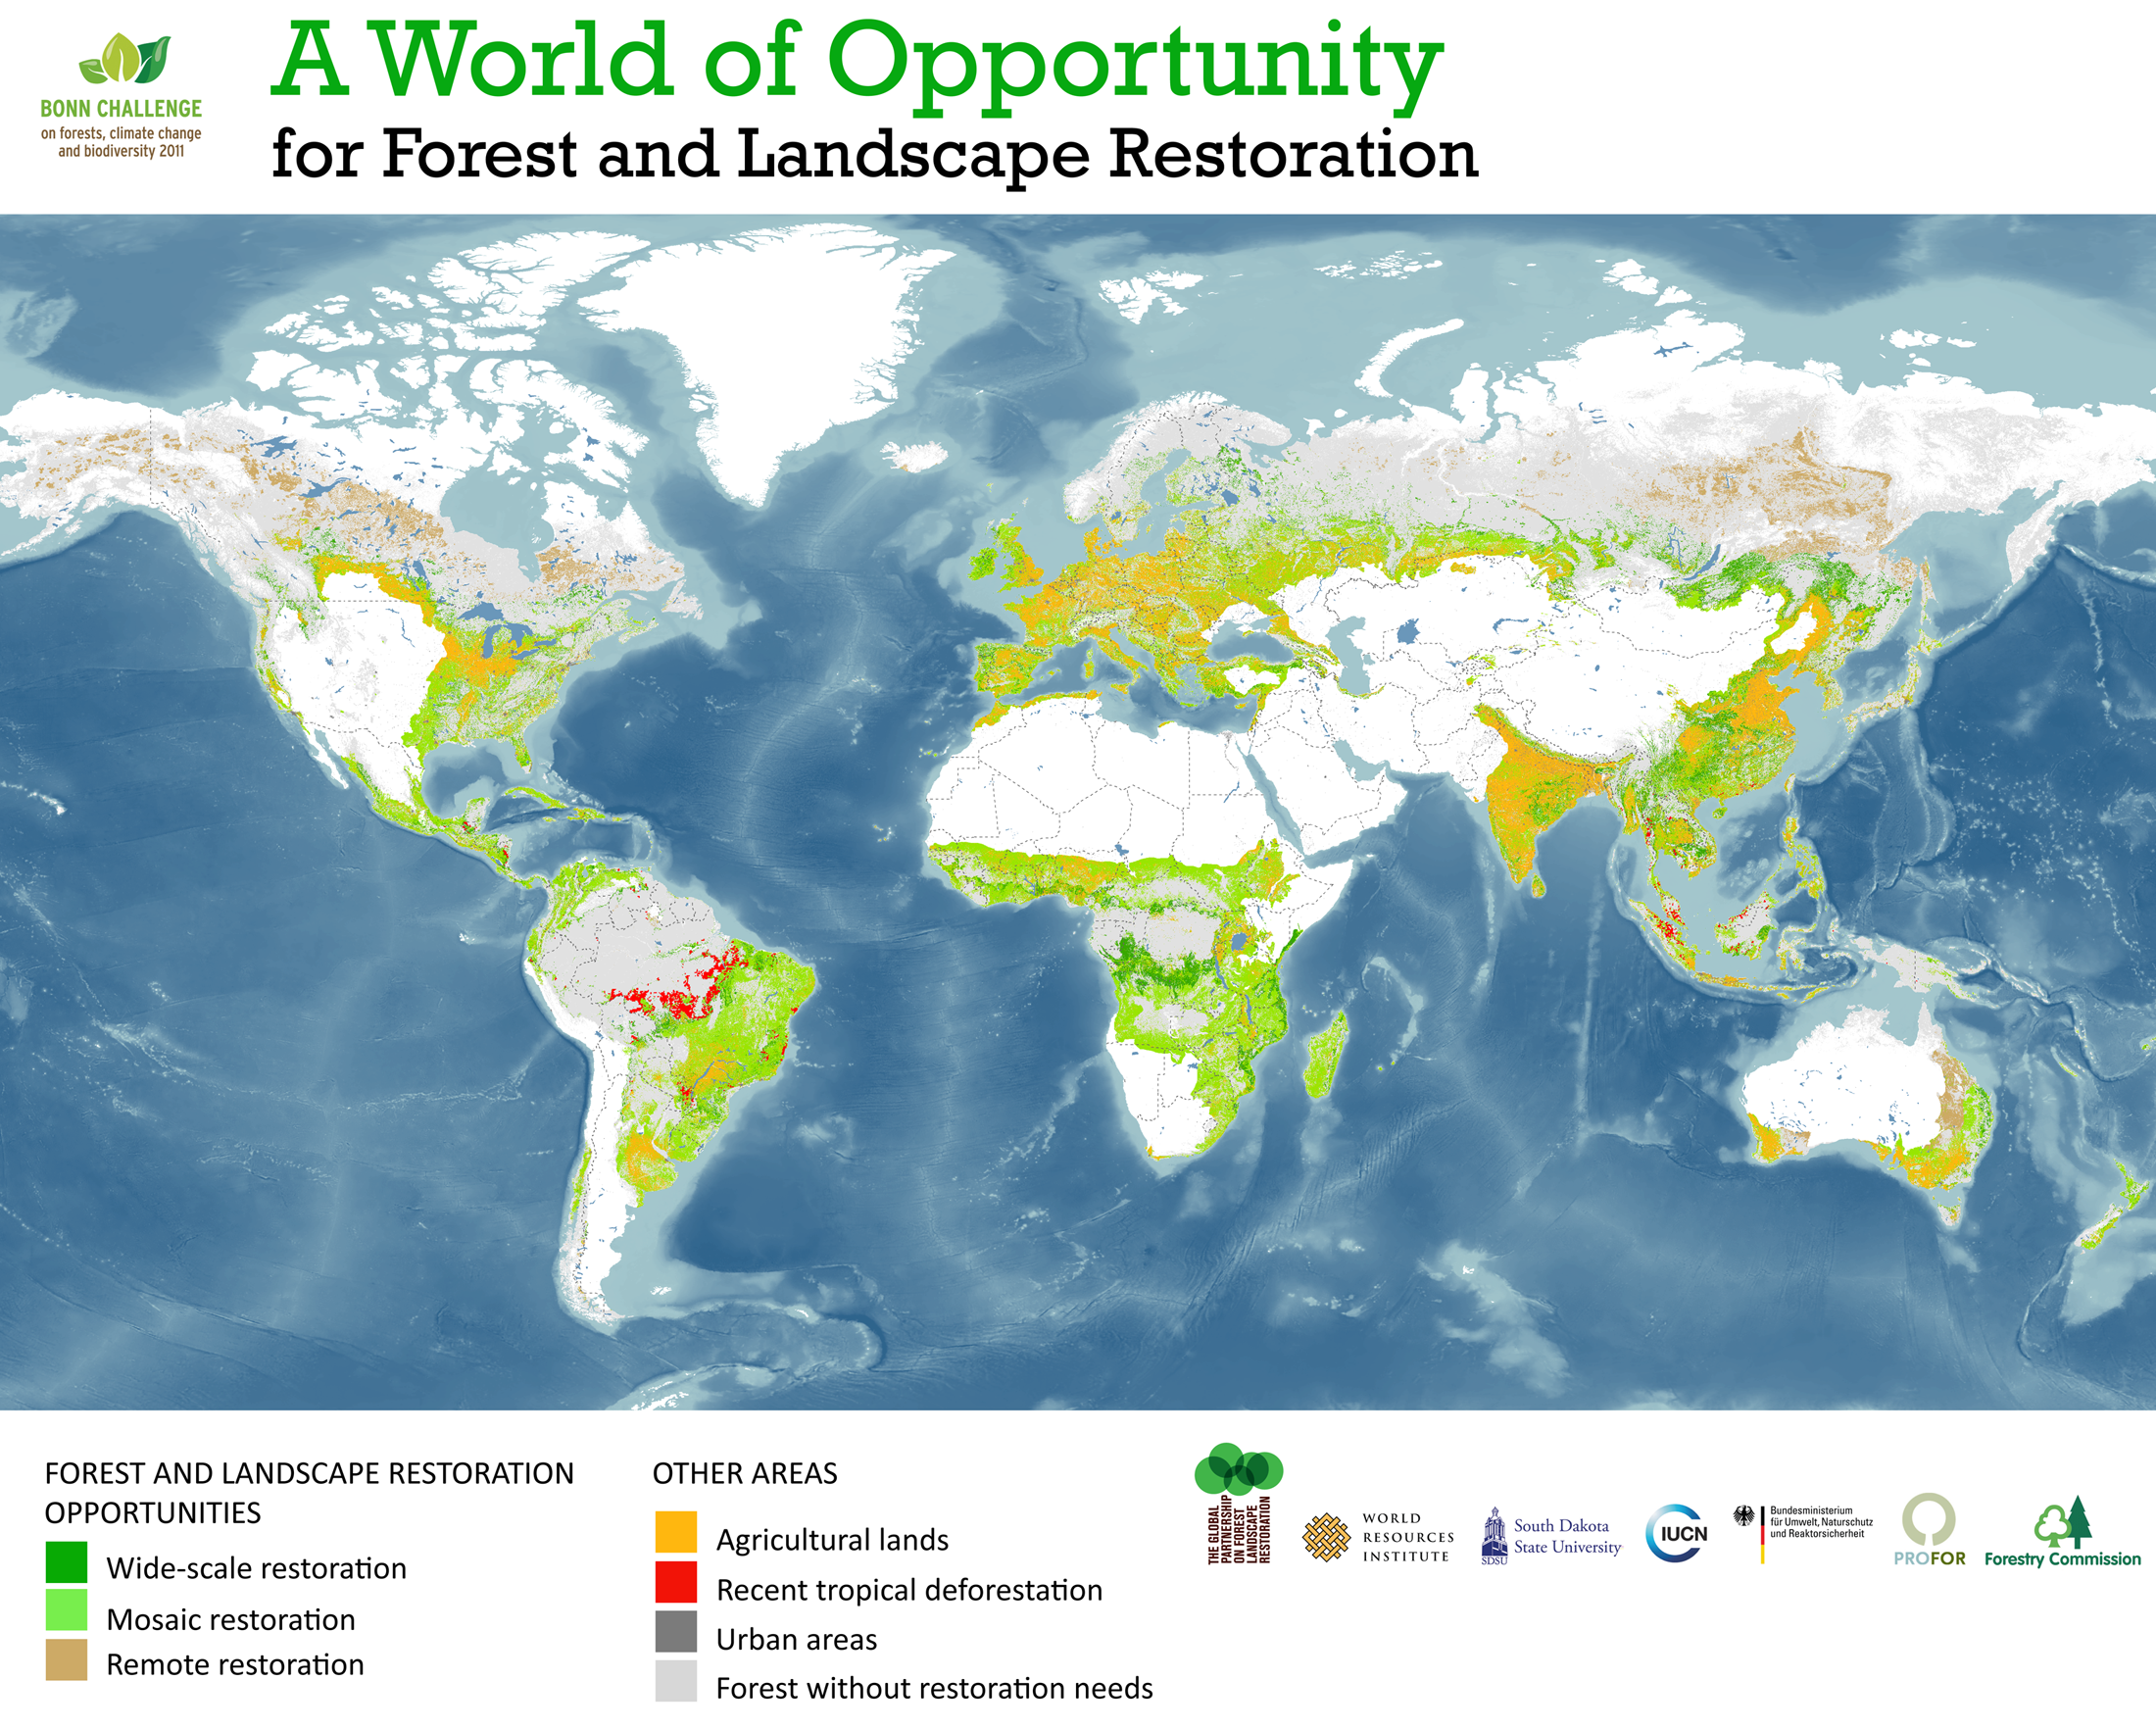 <p>WRI identified 2 billion hectares of degraded land that offer opportunities for restoration. Click on the map to view a larger version.</p>